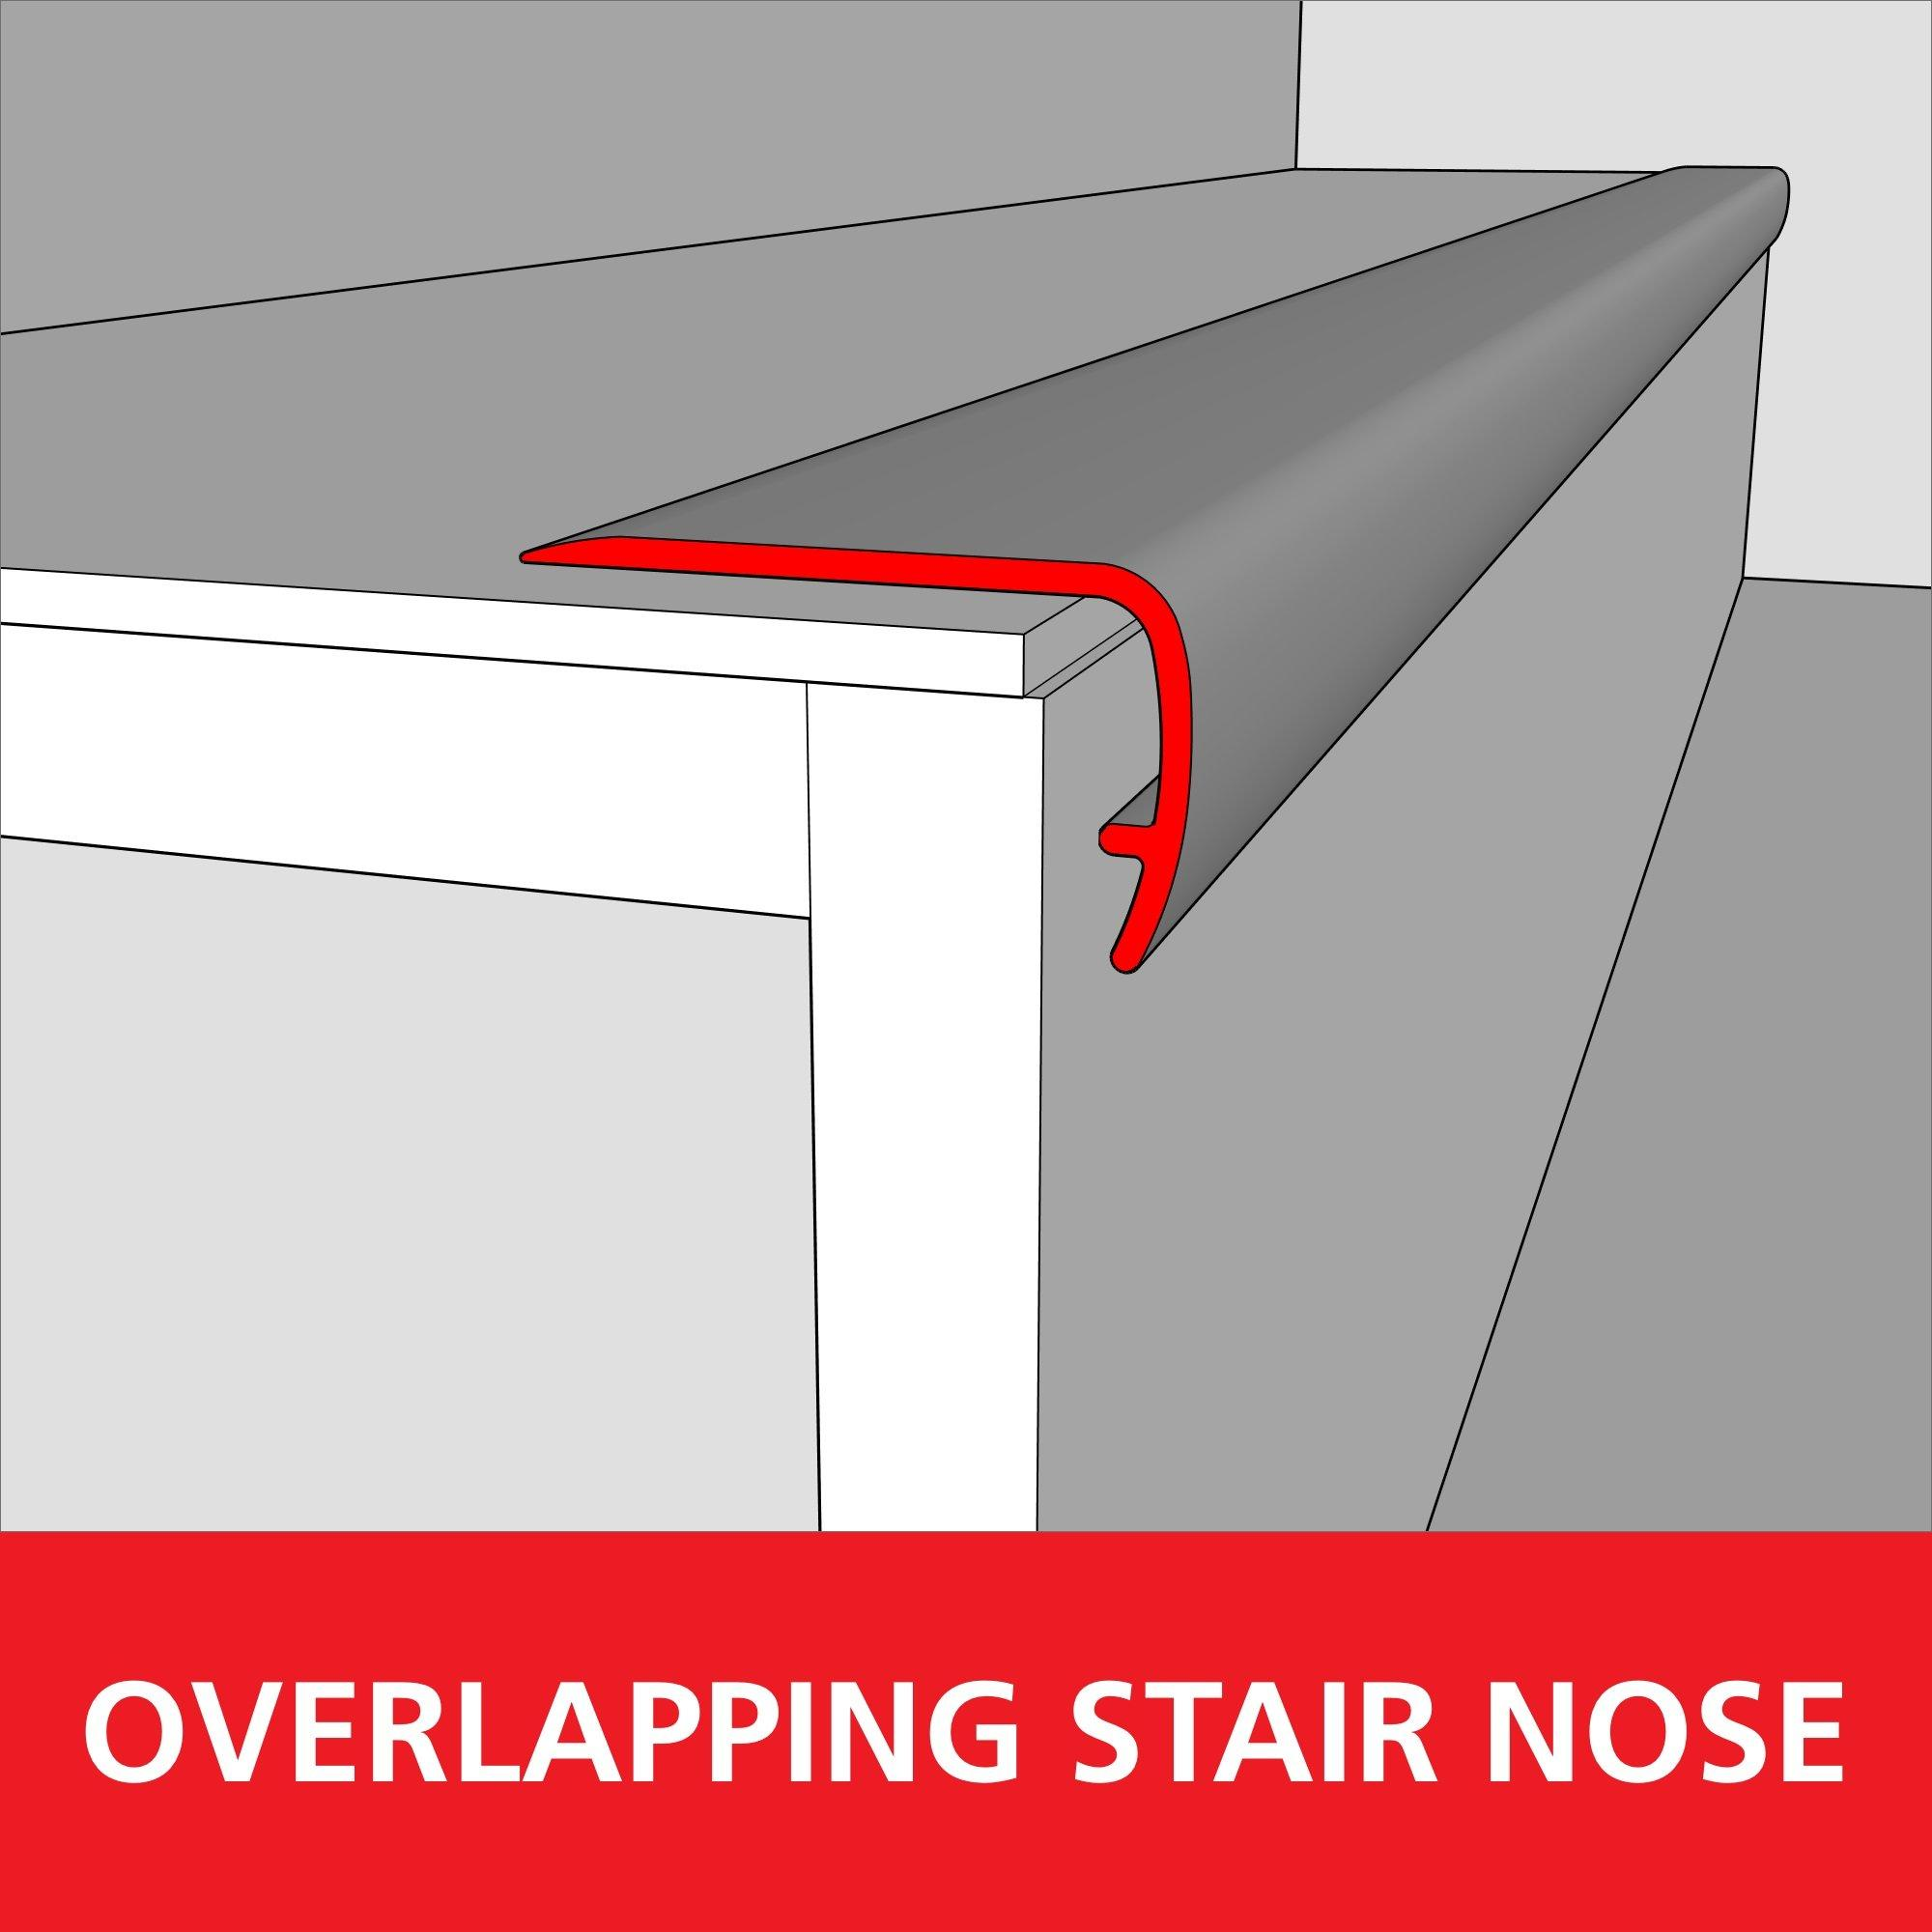 Color 7385 Medium Vinyl Overlapping Stair Nose 94in 100505809 Floor And Decor